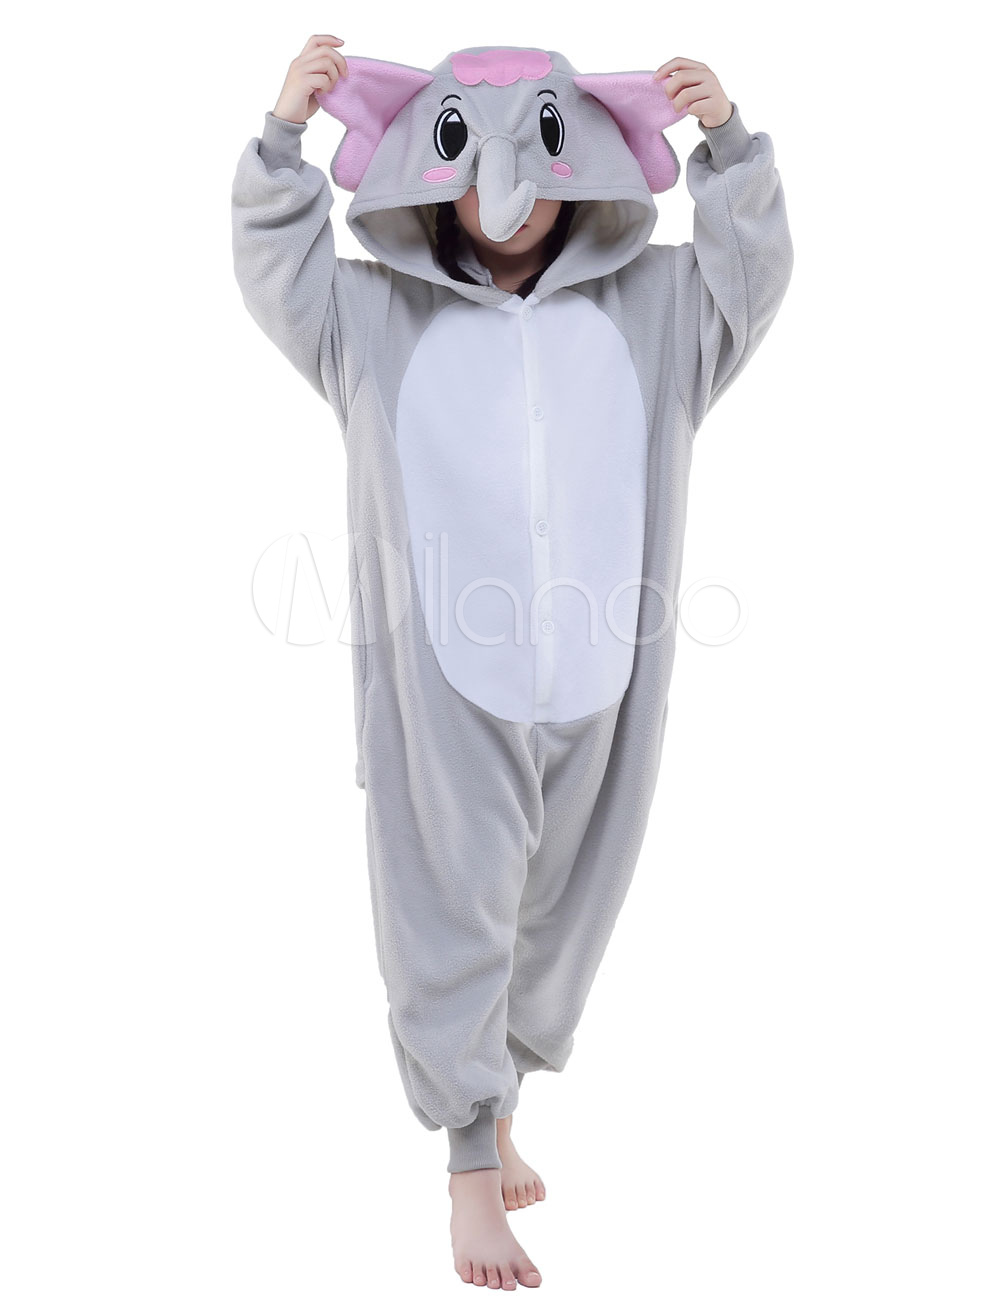 Kigurumi pajamas elephant onesie childrens flannel animal onesie sleepwear costume halloween - Pyjama elephant ...